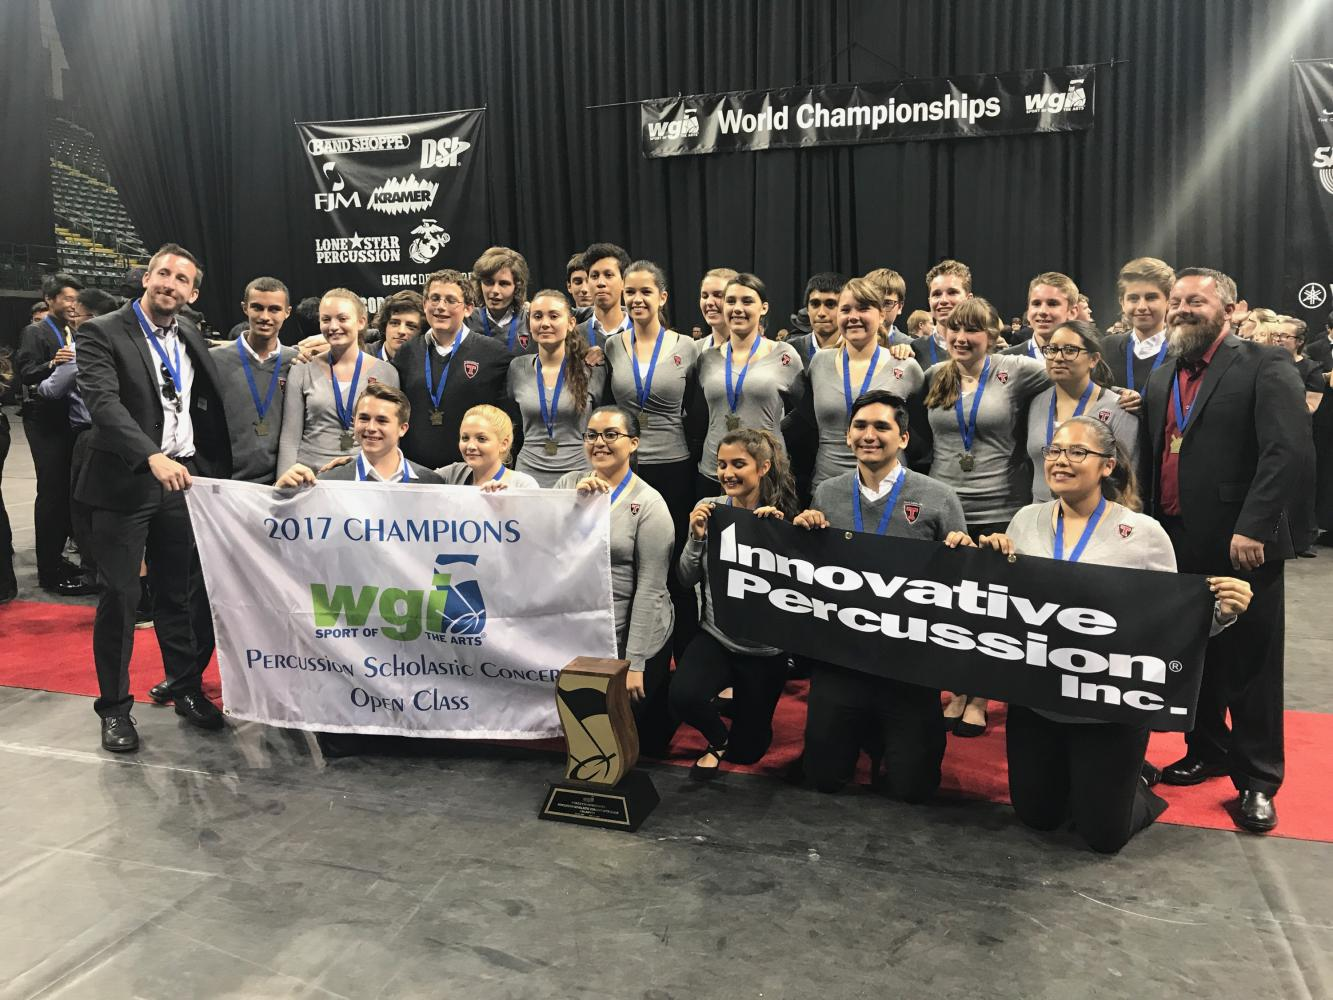 The Winter Percussion Group Accepting/ Taking a picture of there accomplishment of receiving 1st place at an International Competition.